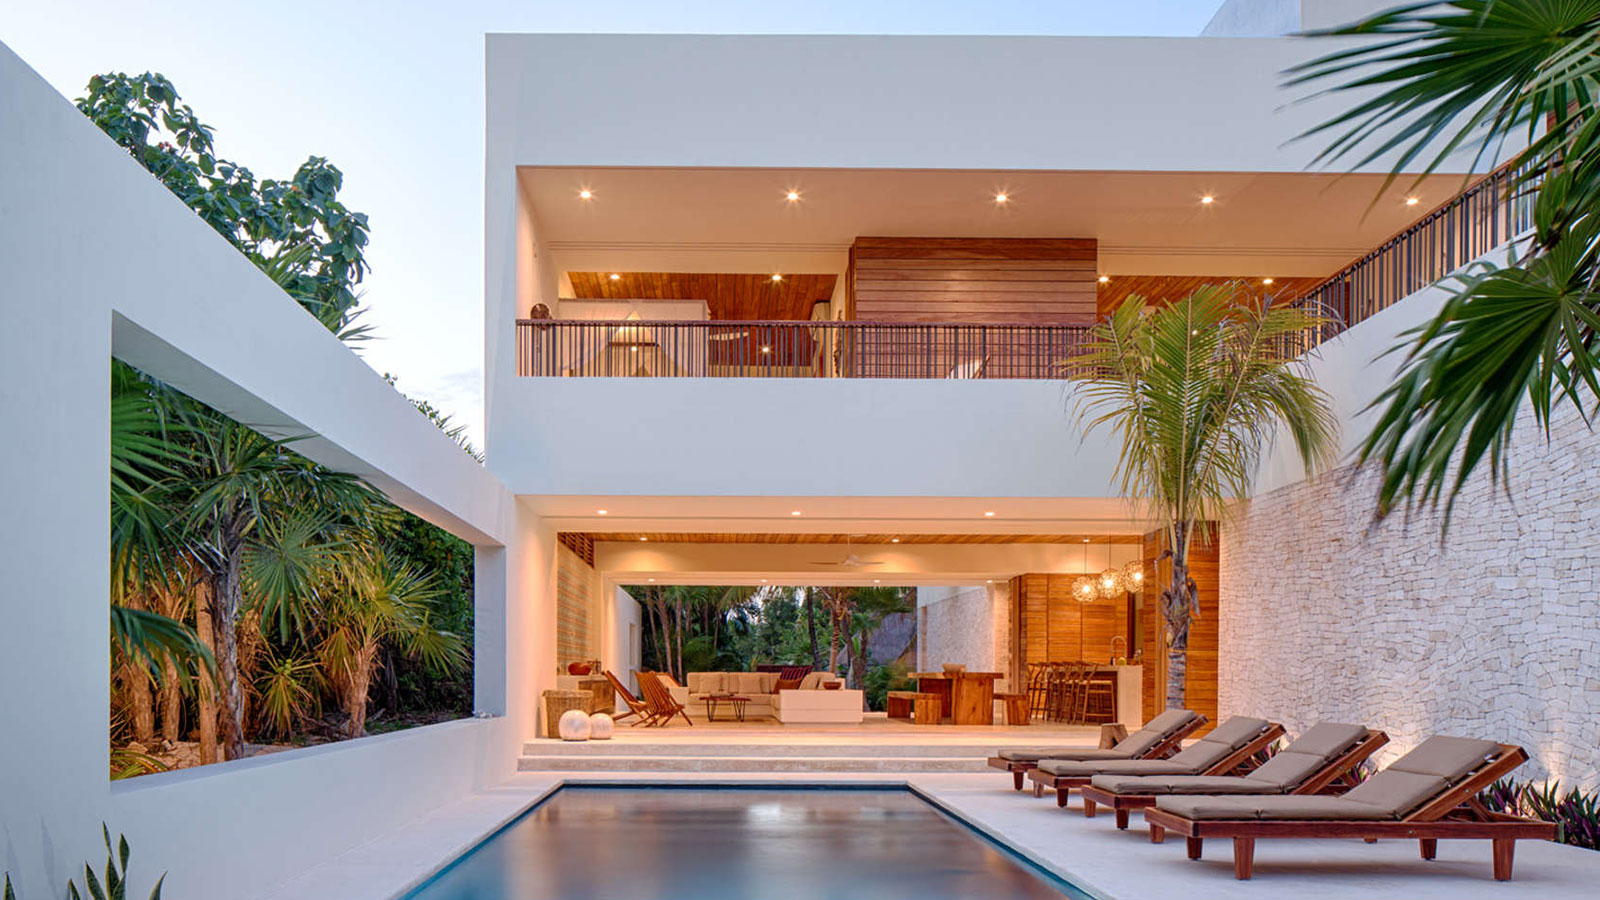 Casa xixim beautiful beach house in tulum mexico beach for Stunning houses pictures